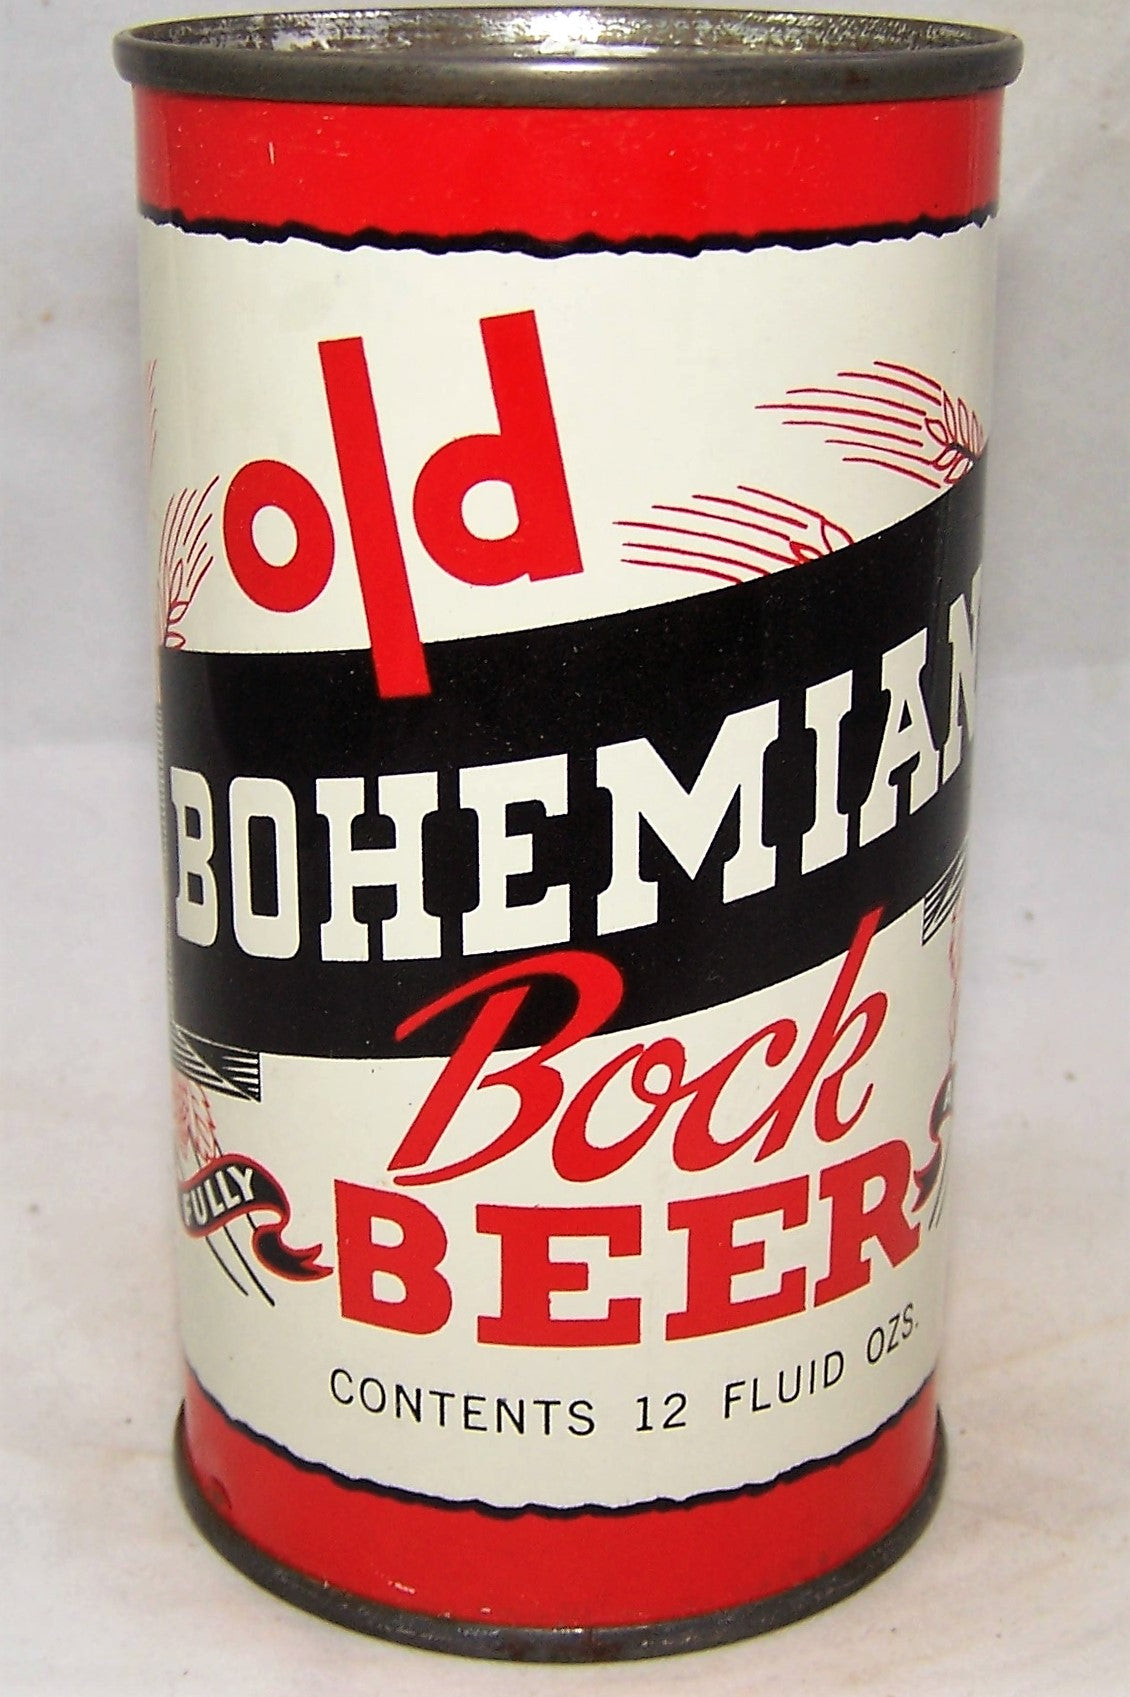 Old Bohemian Bock Beer, USBC 104-15, Grade 1/1+ Sold on 06/30/19